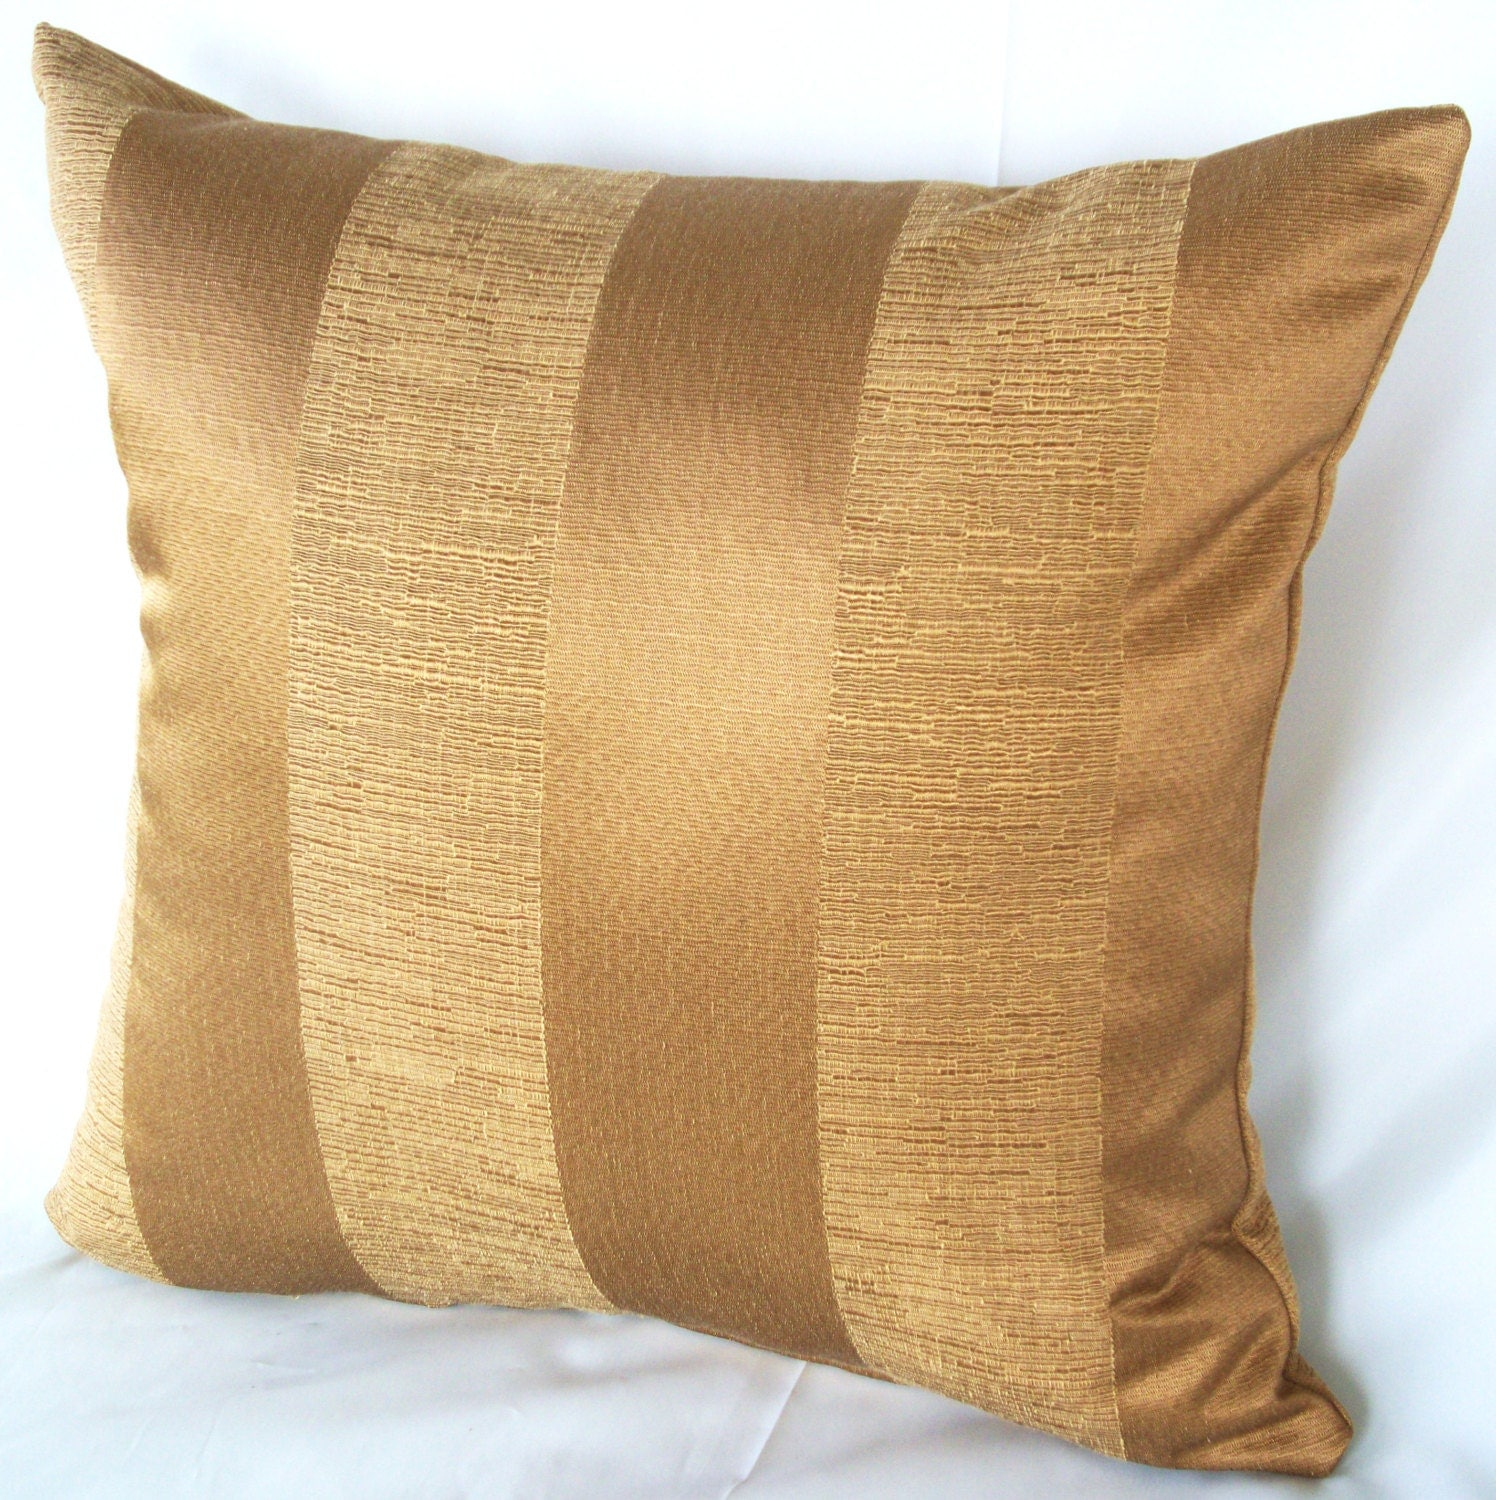 Gold stripe pillow couch pillows cushion cover by for Couch cushion pillows